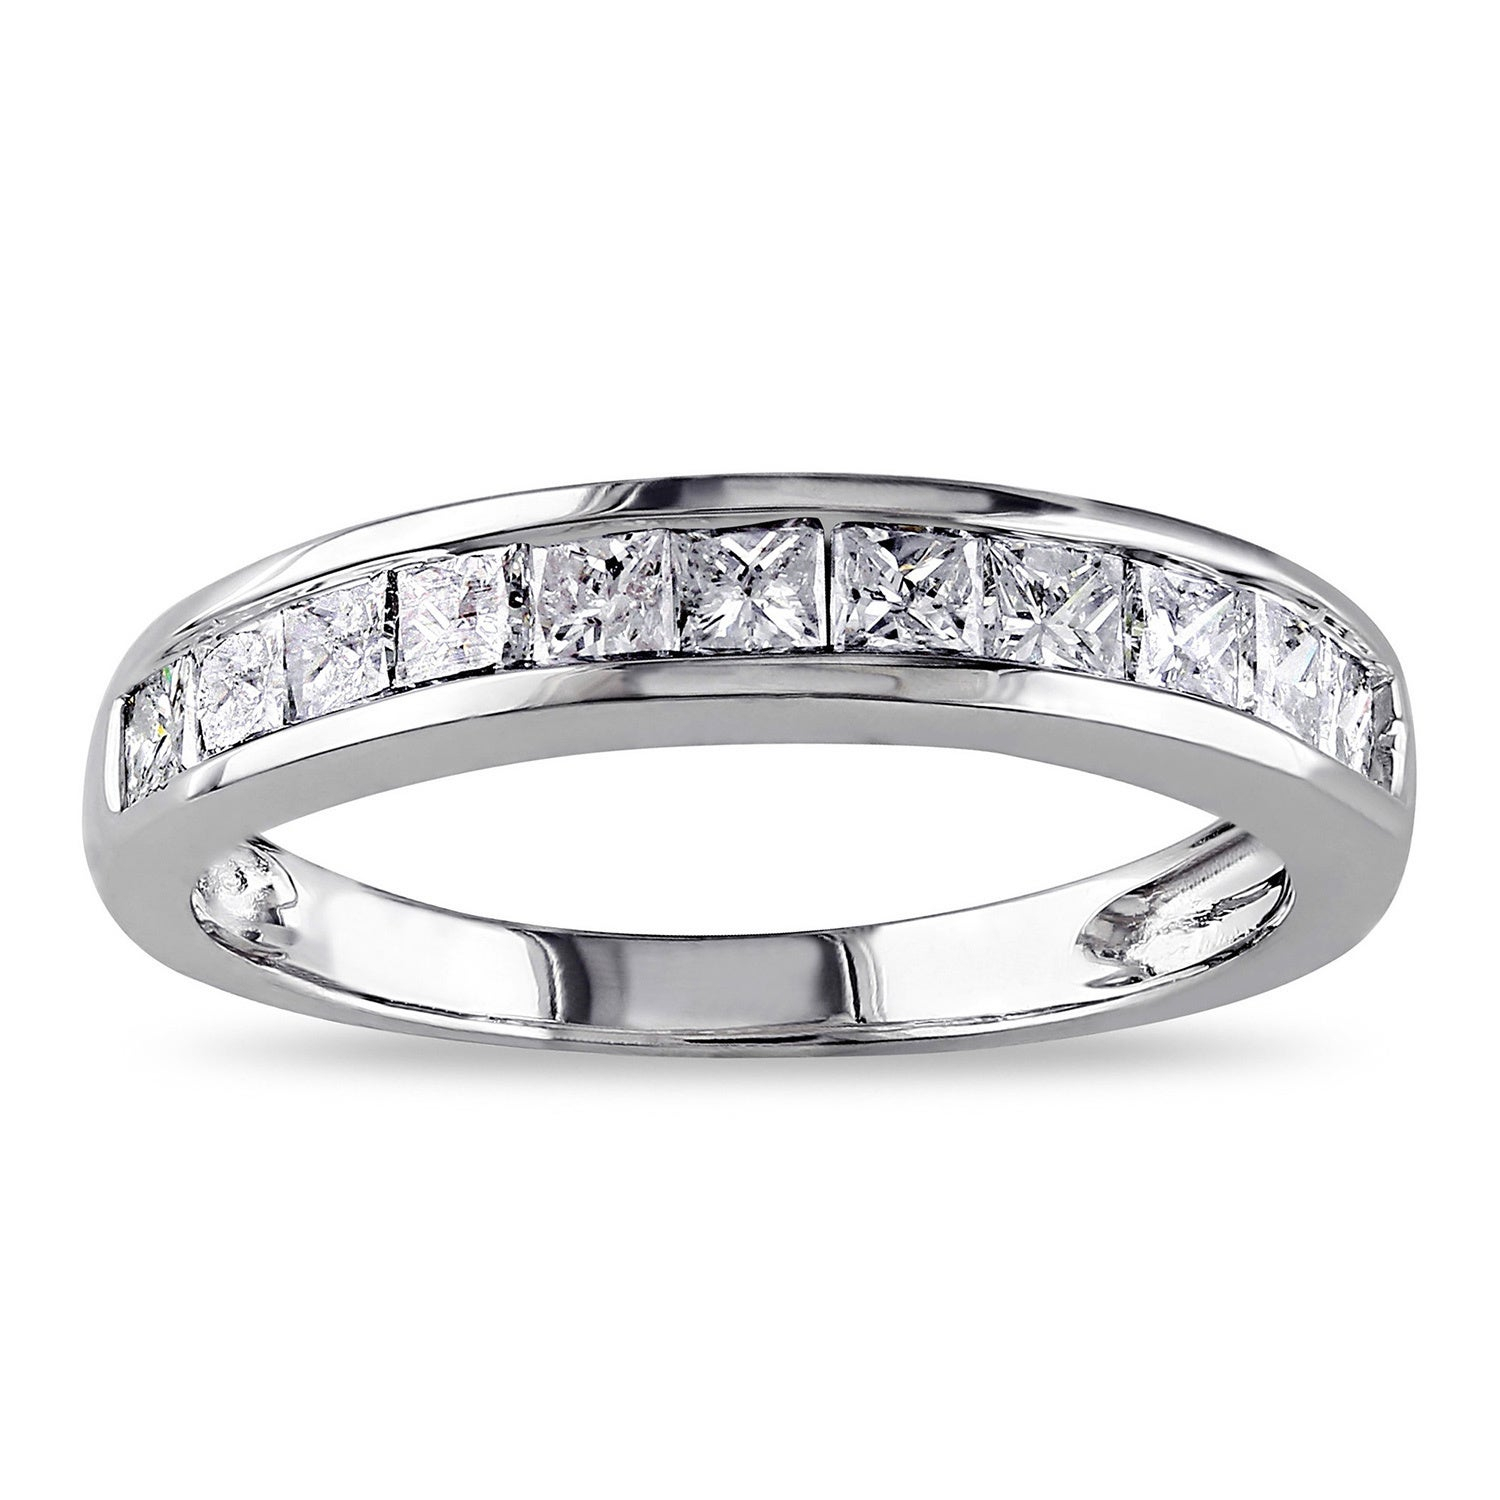 Miadora 14K White Gold 3/4Ct Tdw Channel Set Princess Cut Diamond  Anniversary Band (G H, I2 I3) Throughout Latest Diamond Channel Set Anniversary Bands In White Gold (Gallery 3 of 24)